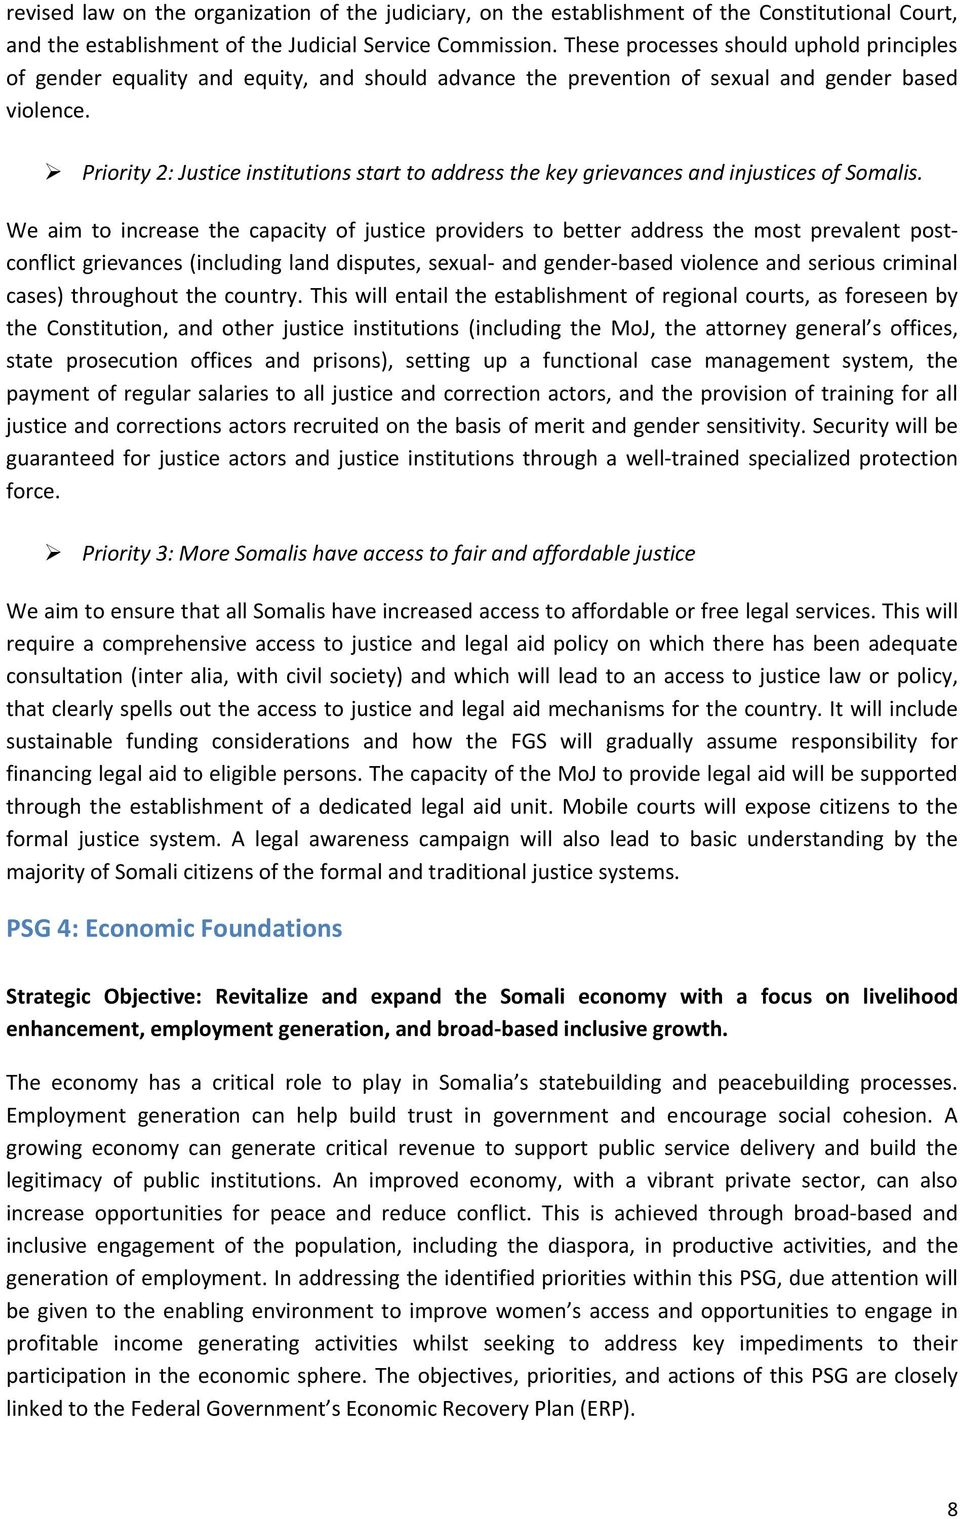 Priority 2: Justice institutions start to address the key grievances and injustices of Somalis.